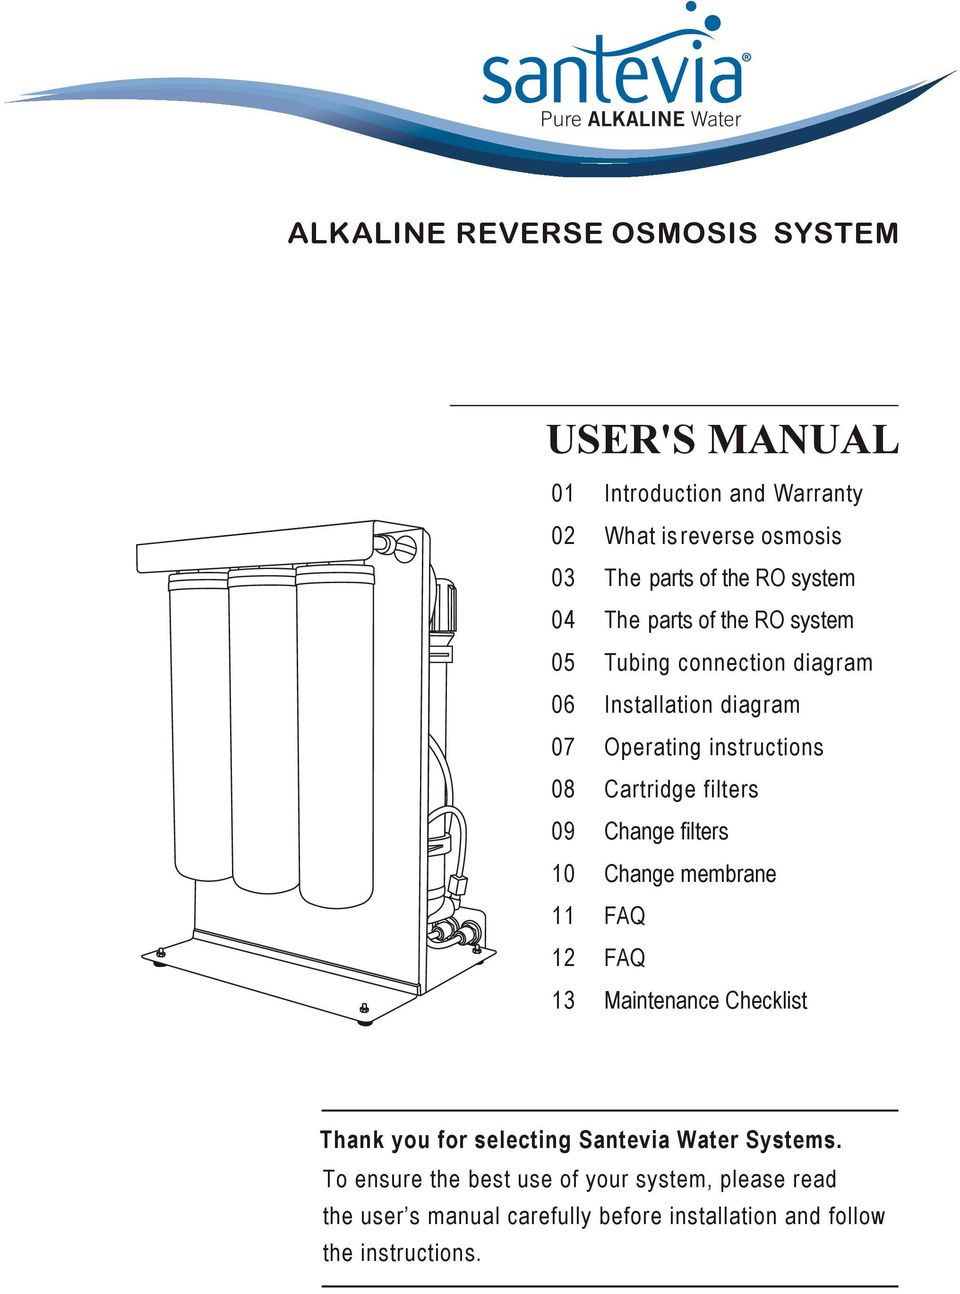 Users manual alkaline reverse osmosis system pdf 08 cartridge filters 09 change filters 10 change membrane 11 faq 12 faq 13 maintenance checklist publicscrutiny Choice Image